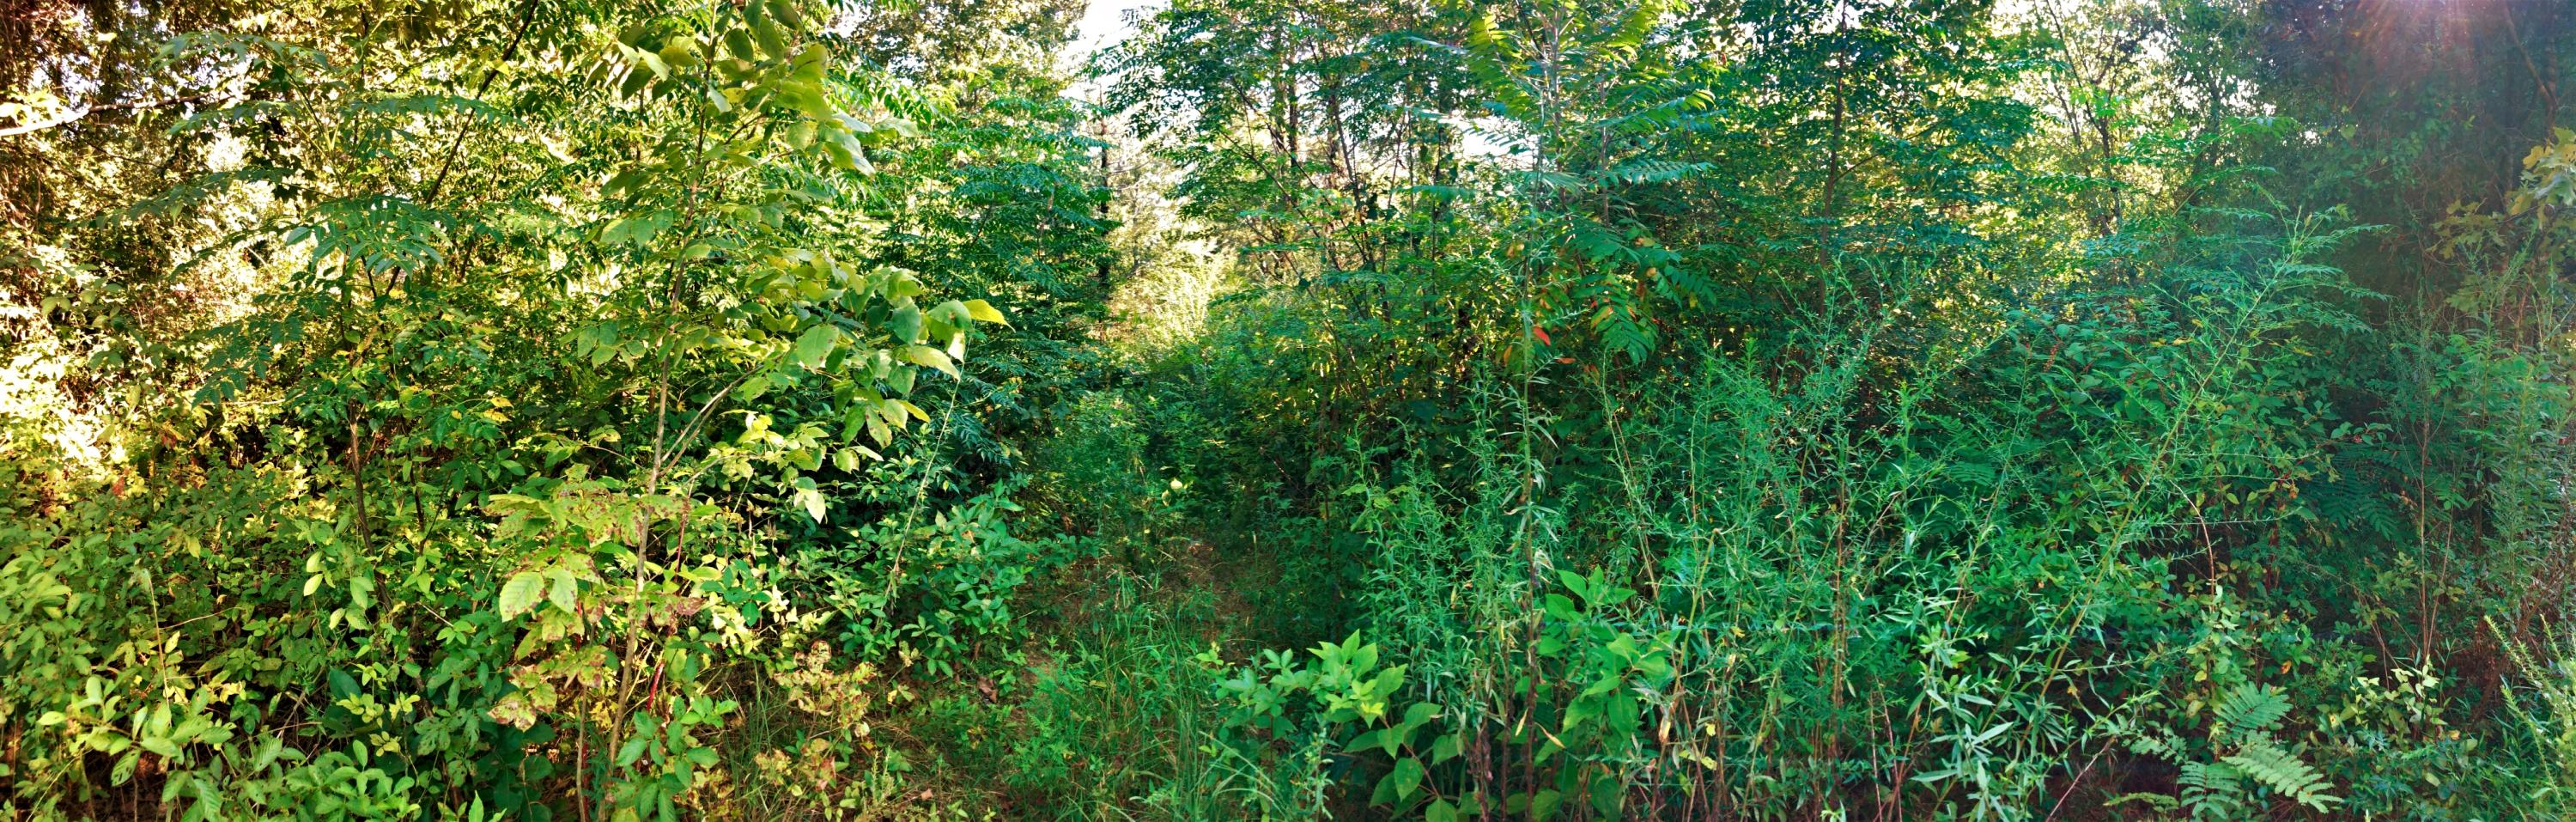 Large photo 5 of land for sale at 0 State Highway 155 , Dardanelle, AR, listed by Coldwell Banker James R. Ford